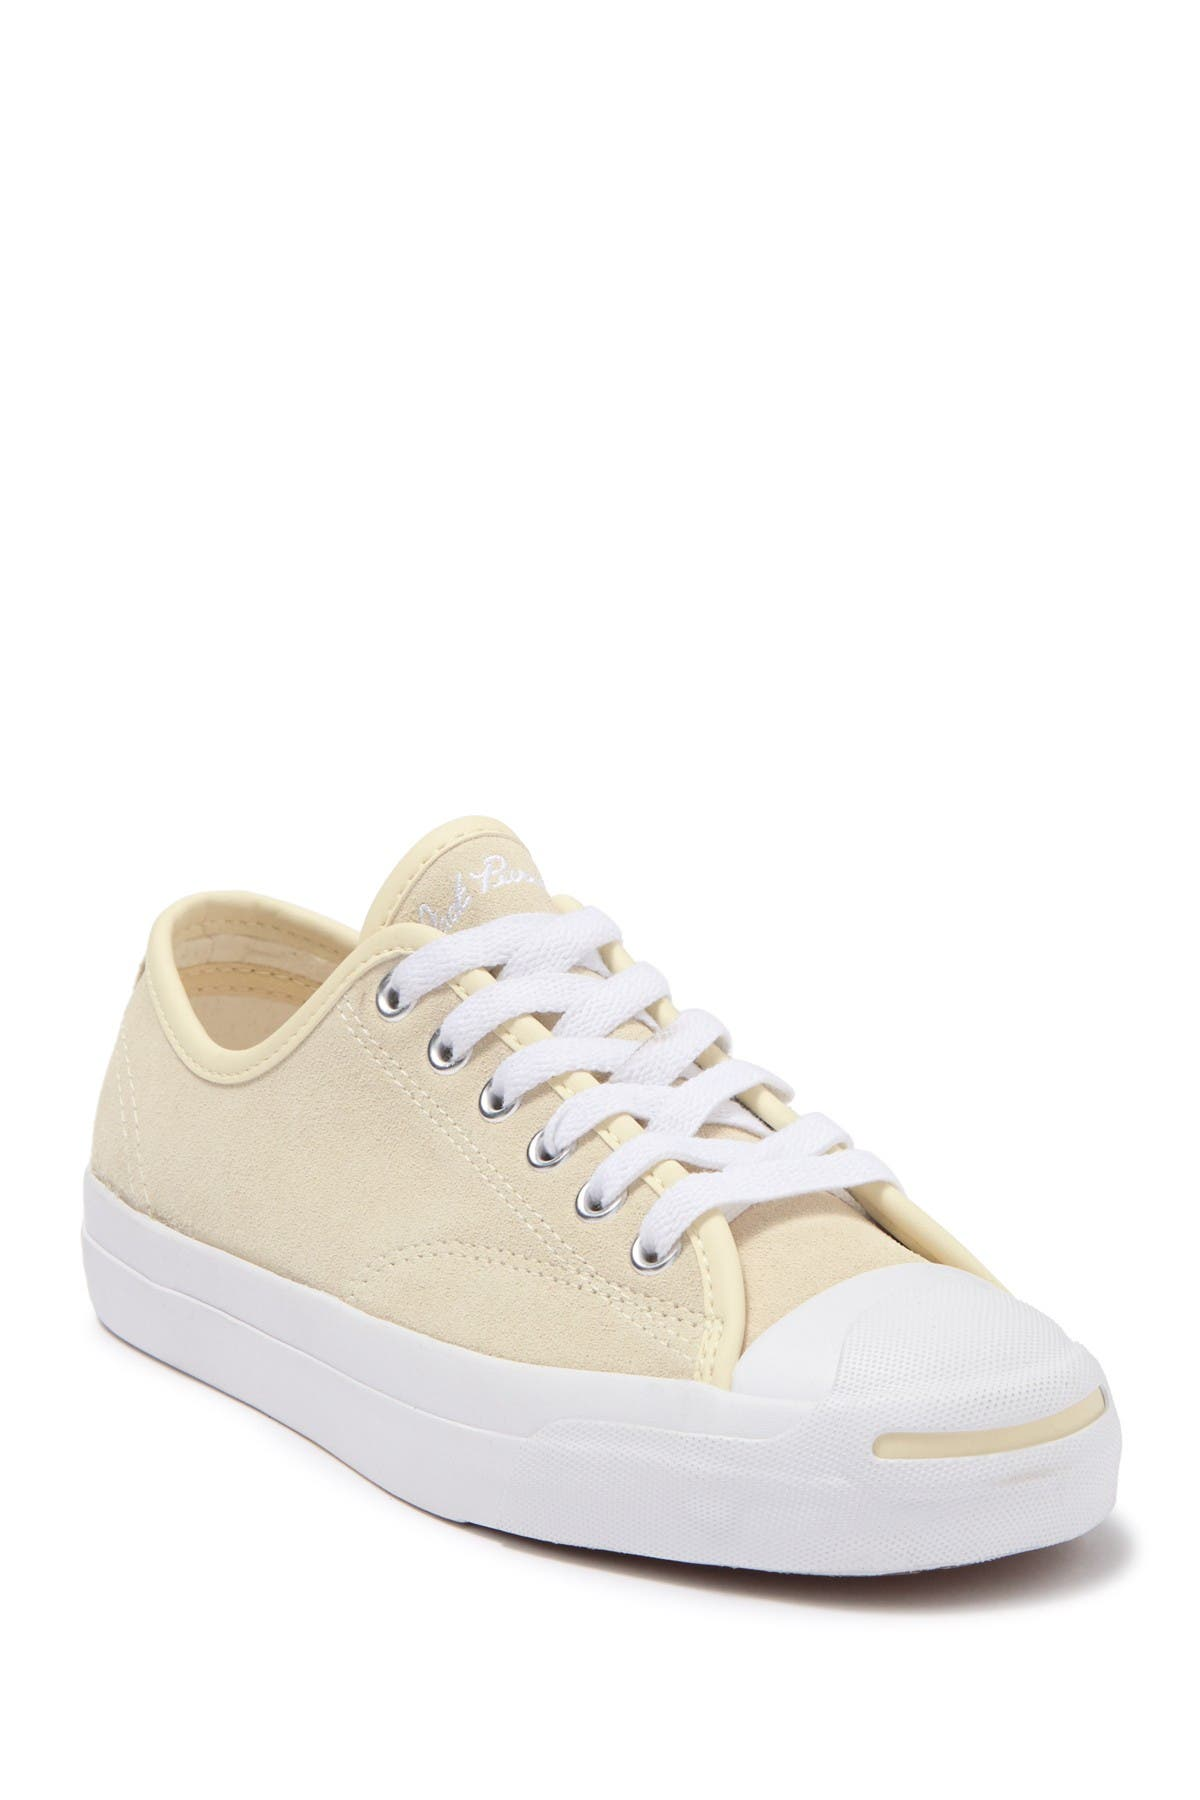 Converse | x Jack Purcell Suede Sneaker